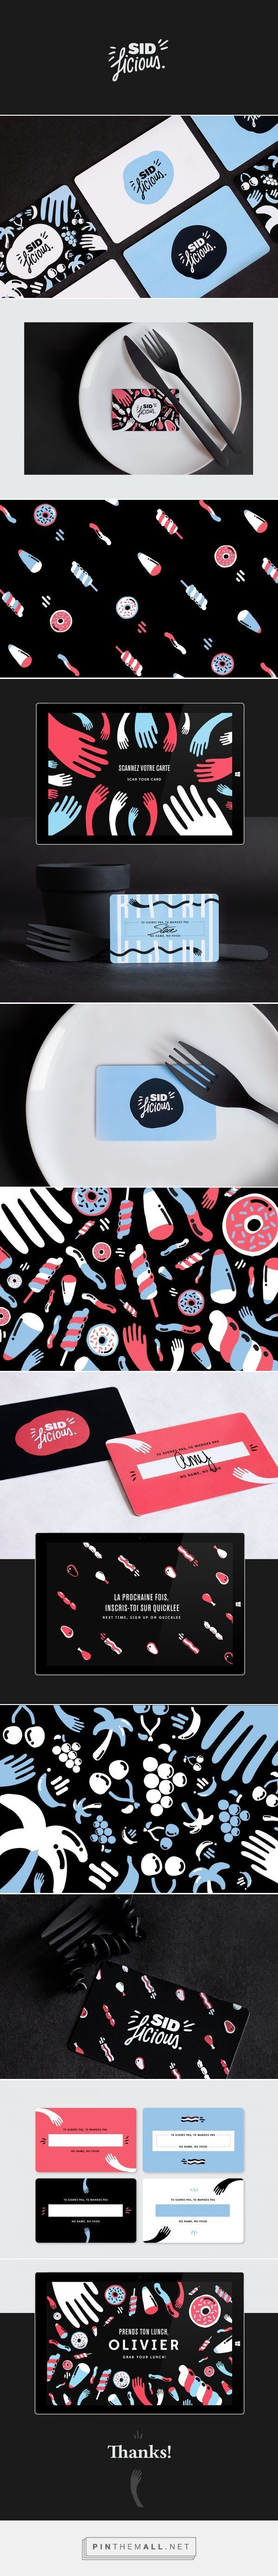 Sid Licious Bistro by Sid Lee on Behance